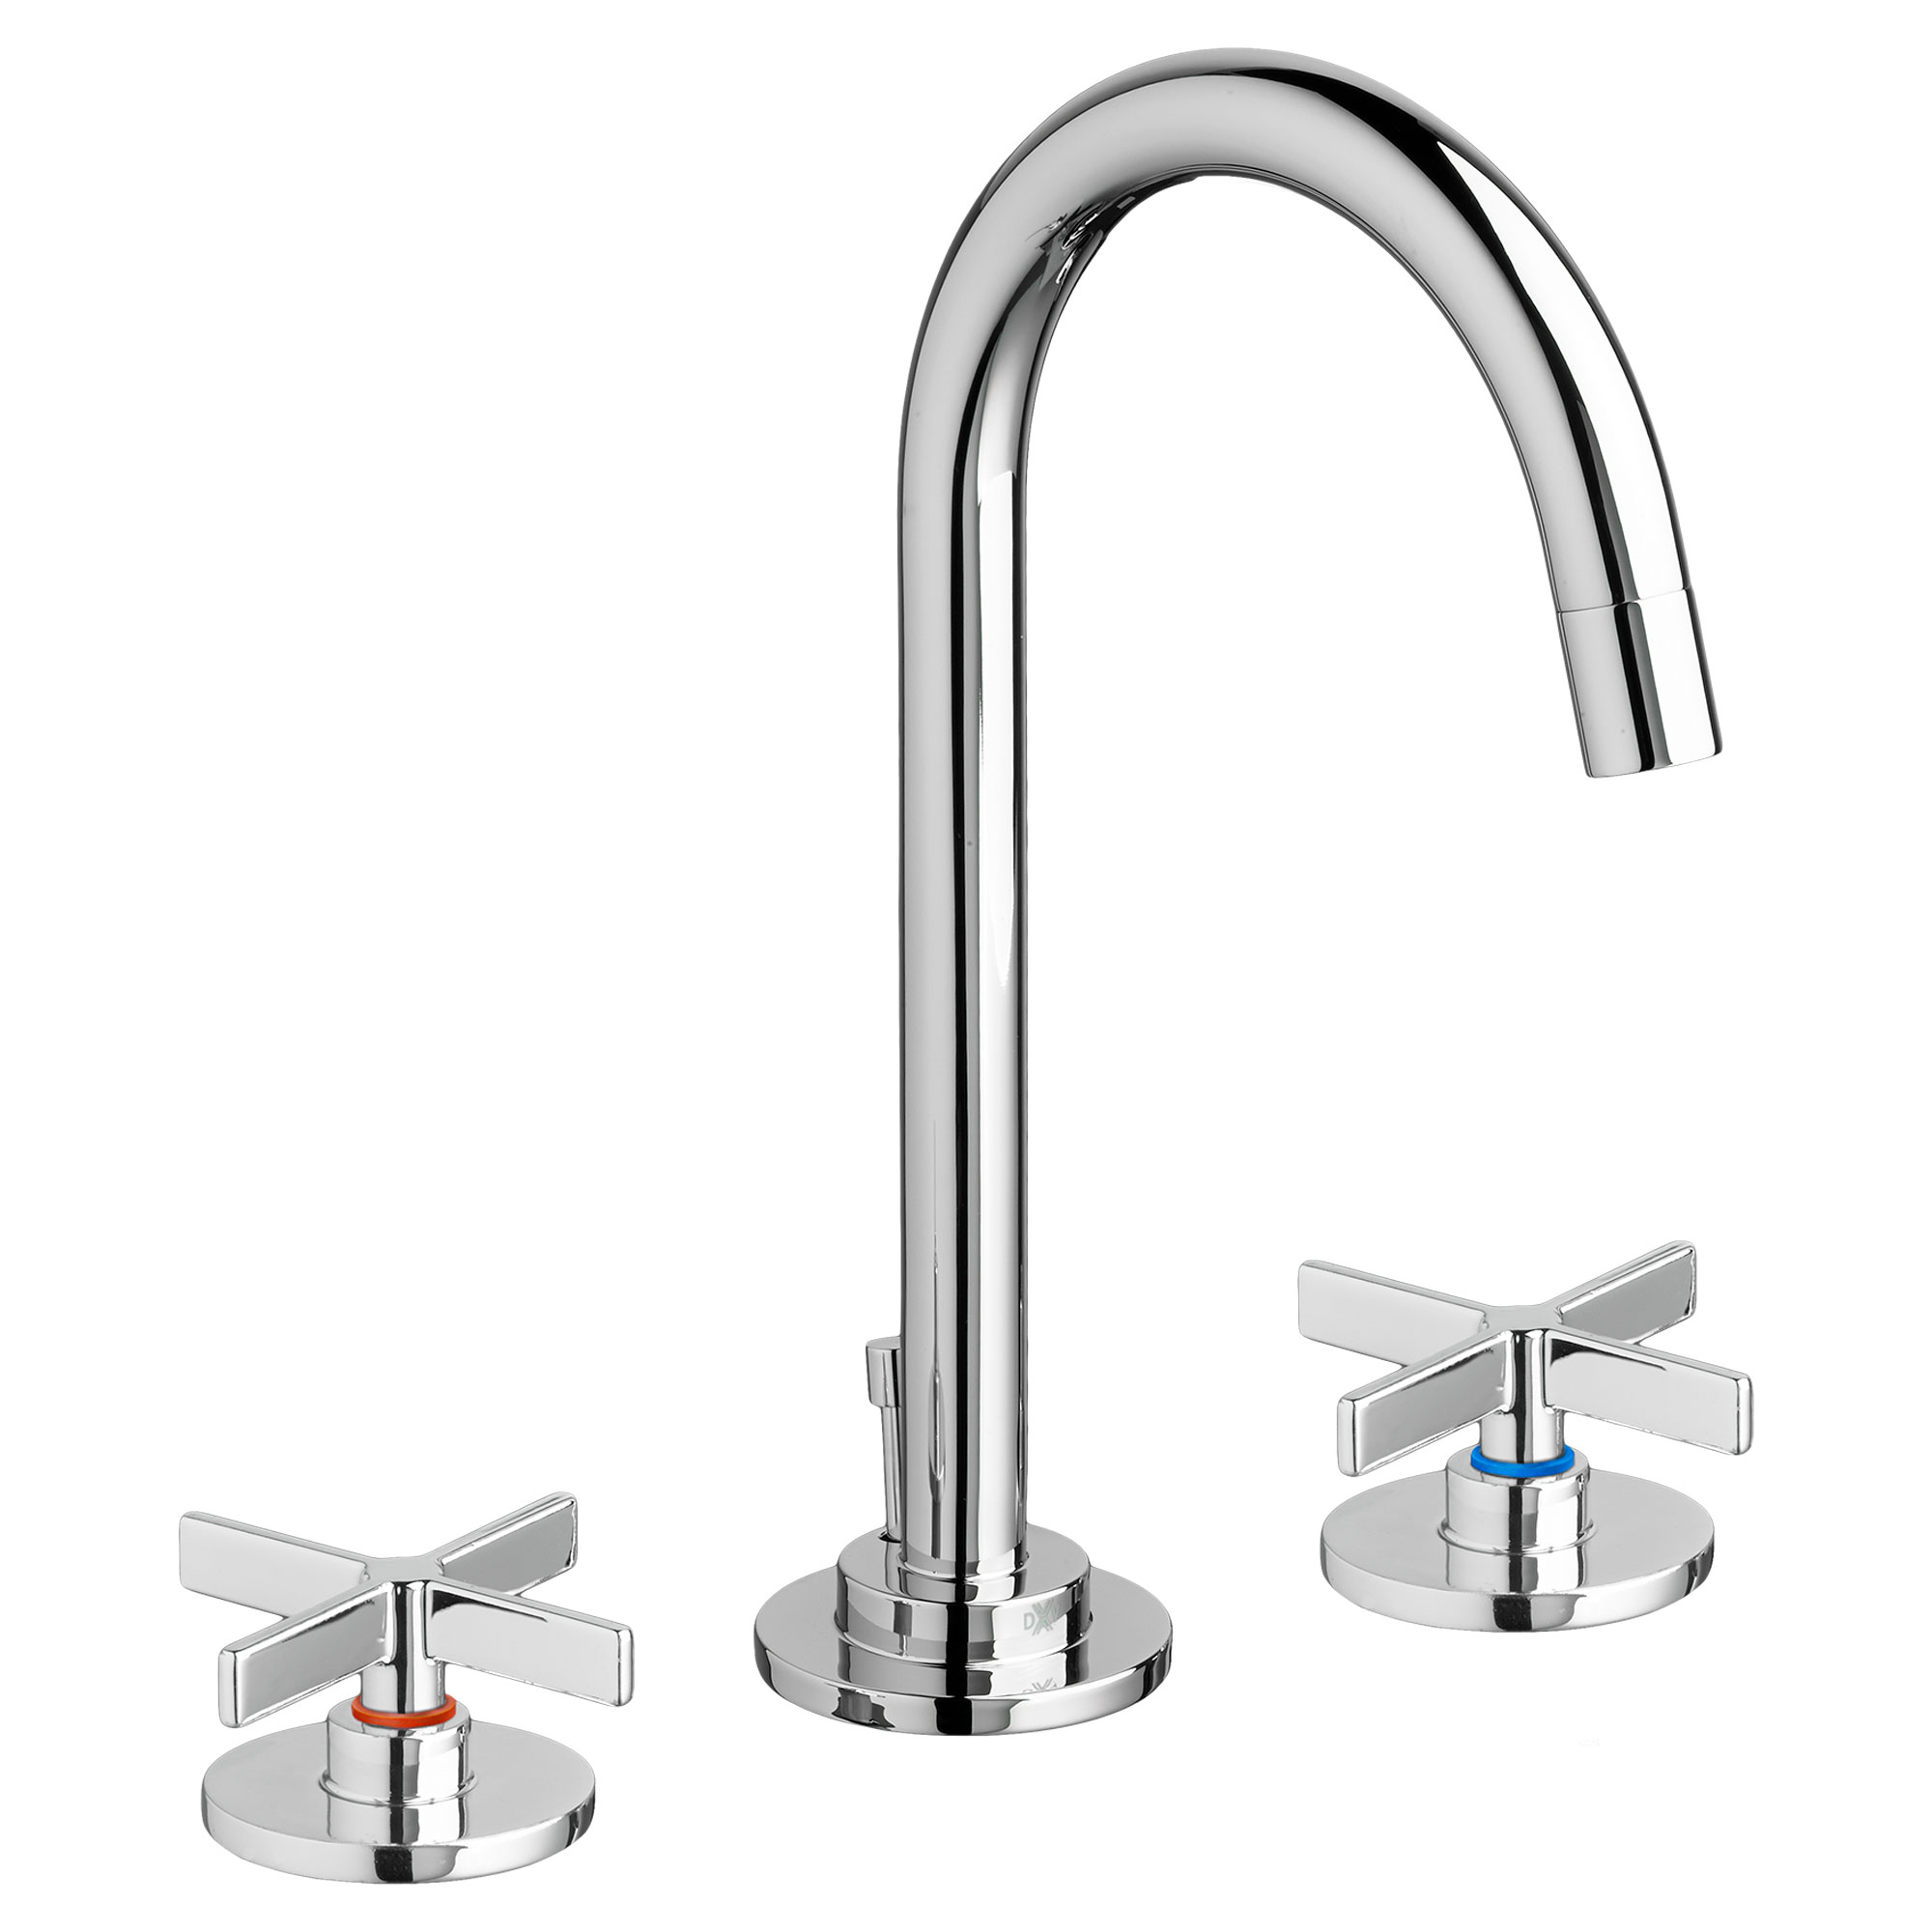 of com centerset cross chrome handle htsrec teapot faucet awesome bathroom inspirational photos handles